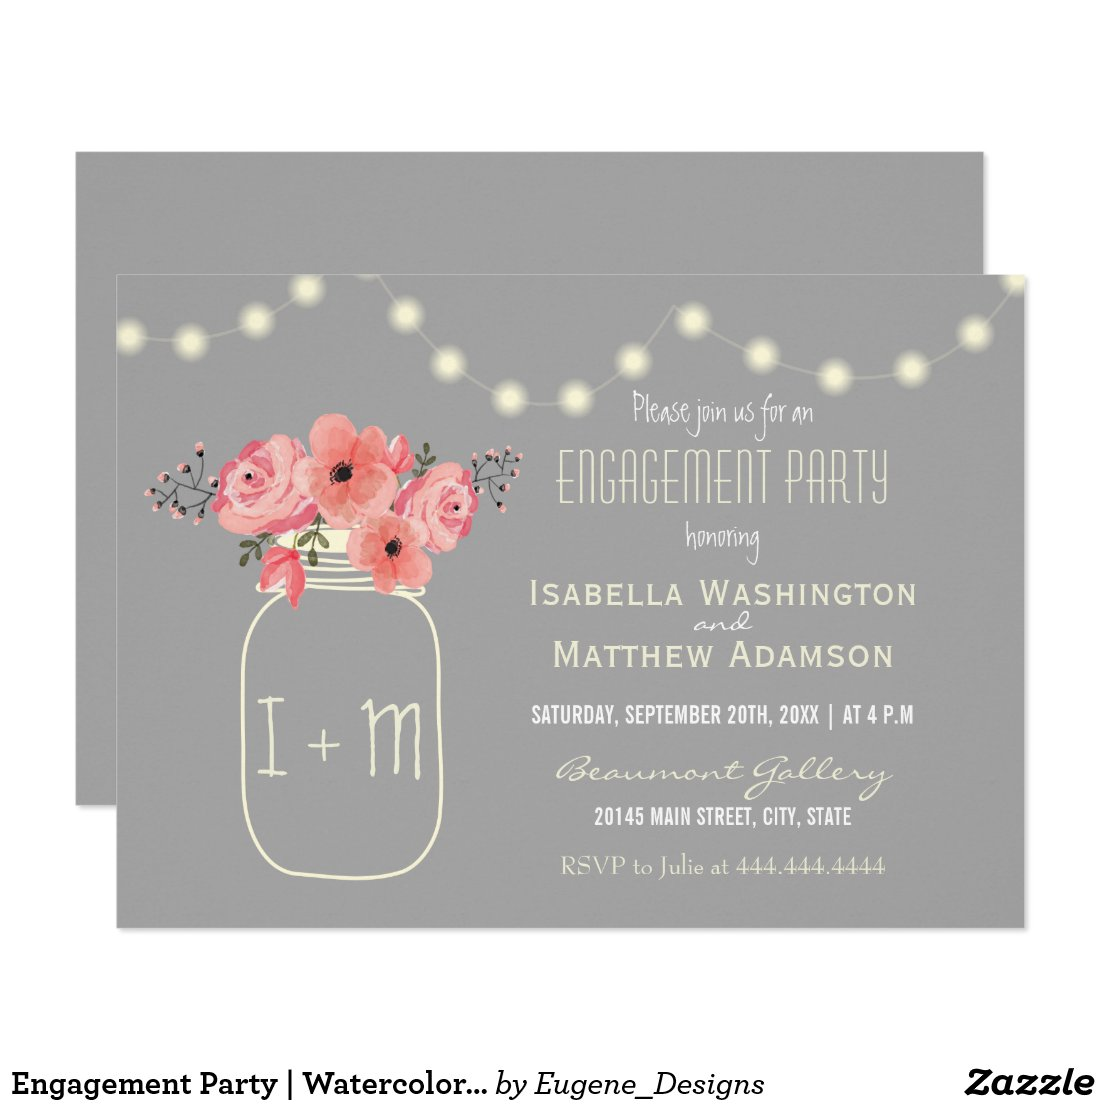 Engagement Party | Watercolor Flowers & Mason Jar Invitation